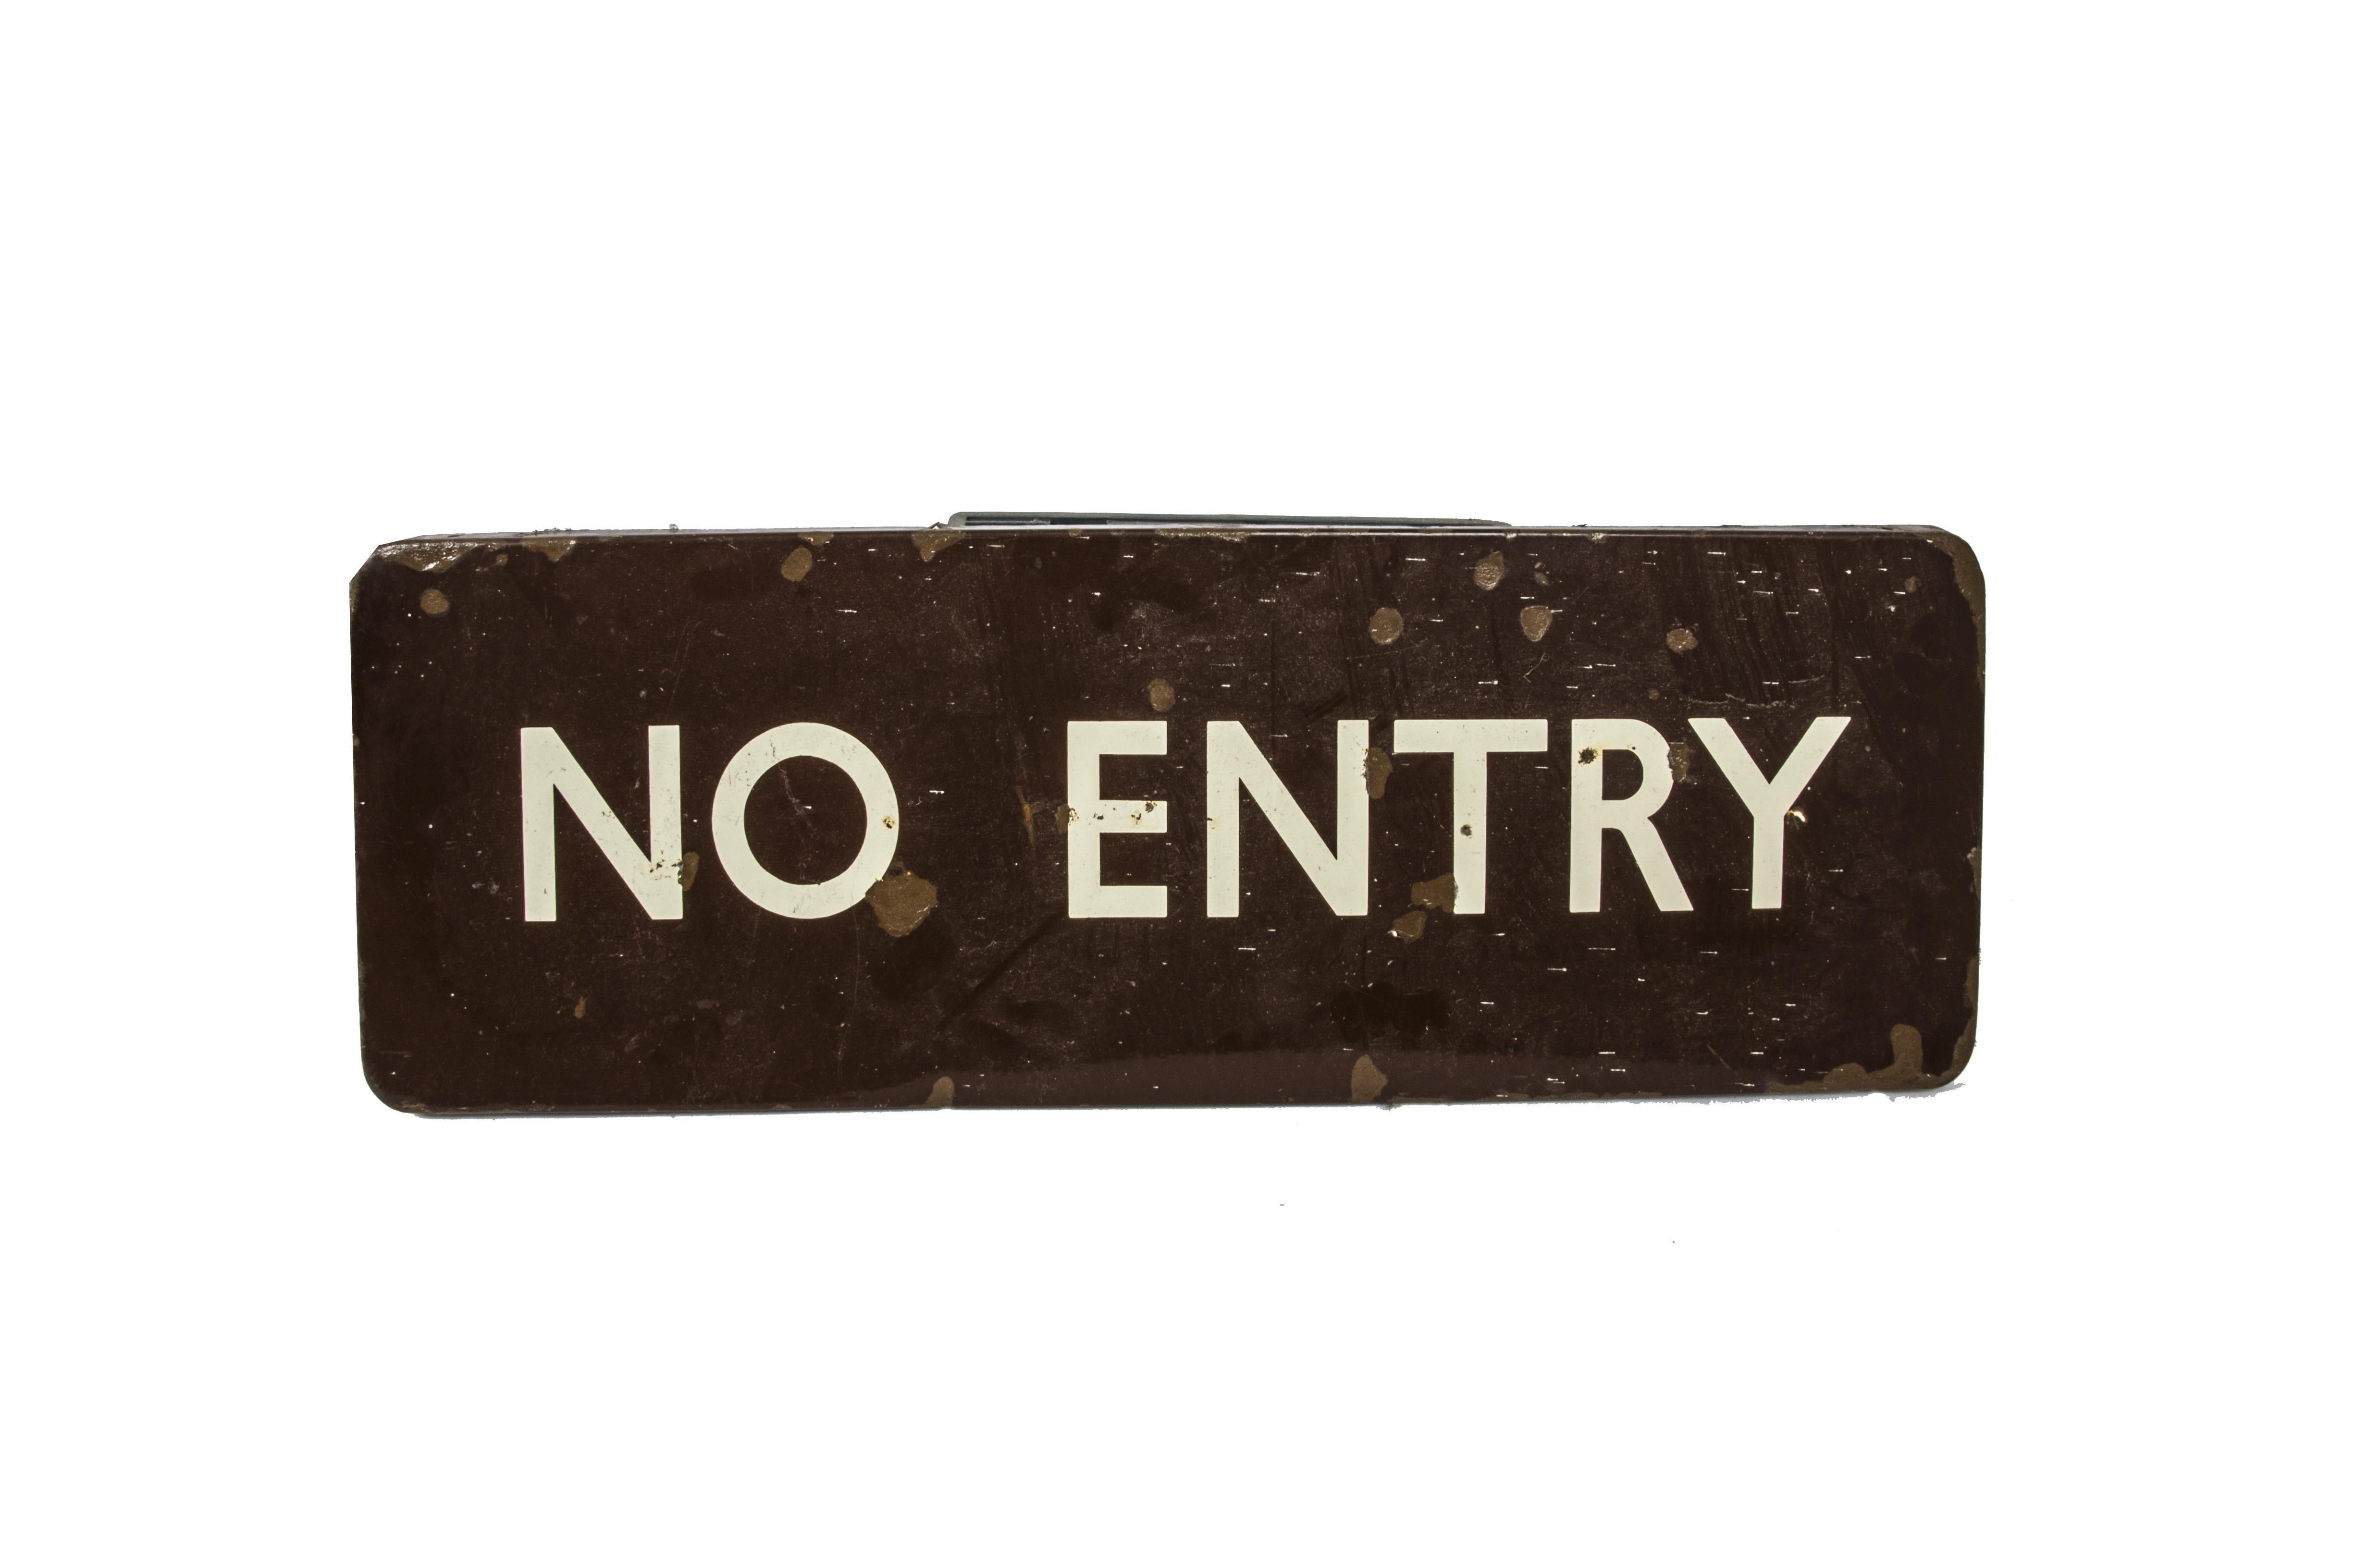 Lot 763 - No Entry Sign, a BR Western Region enamelled sign with white lettering on a brown ground fully